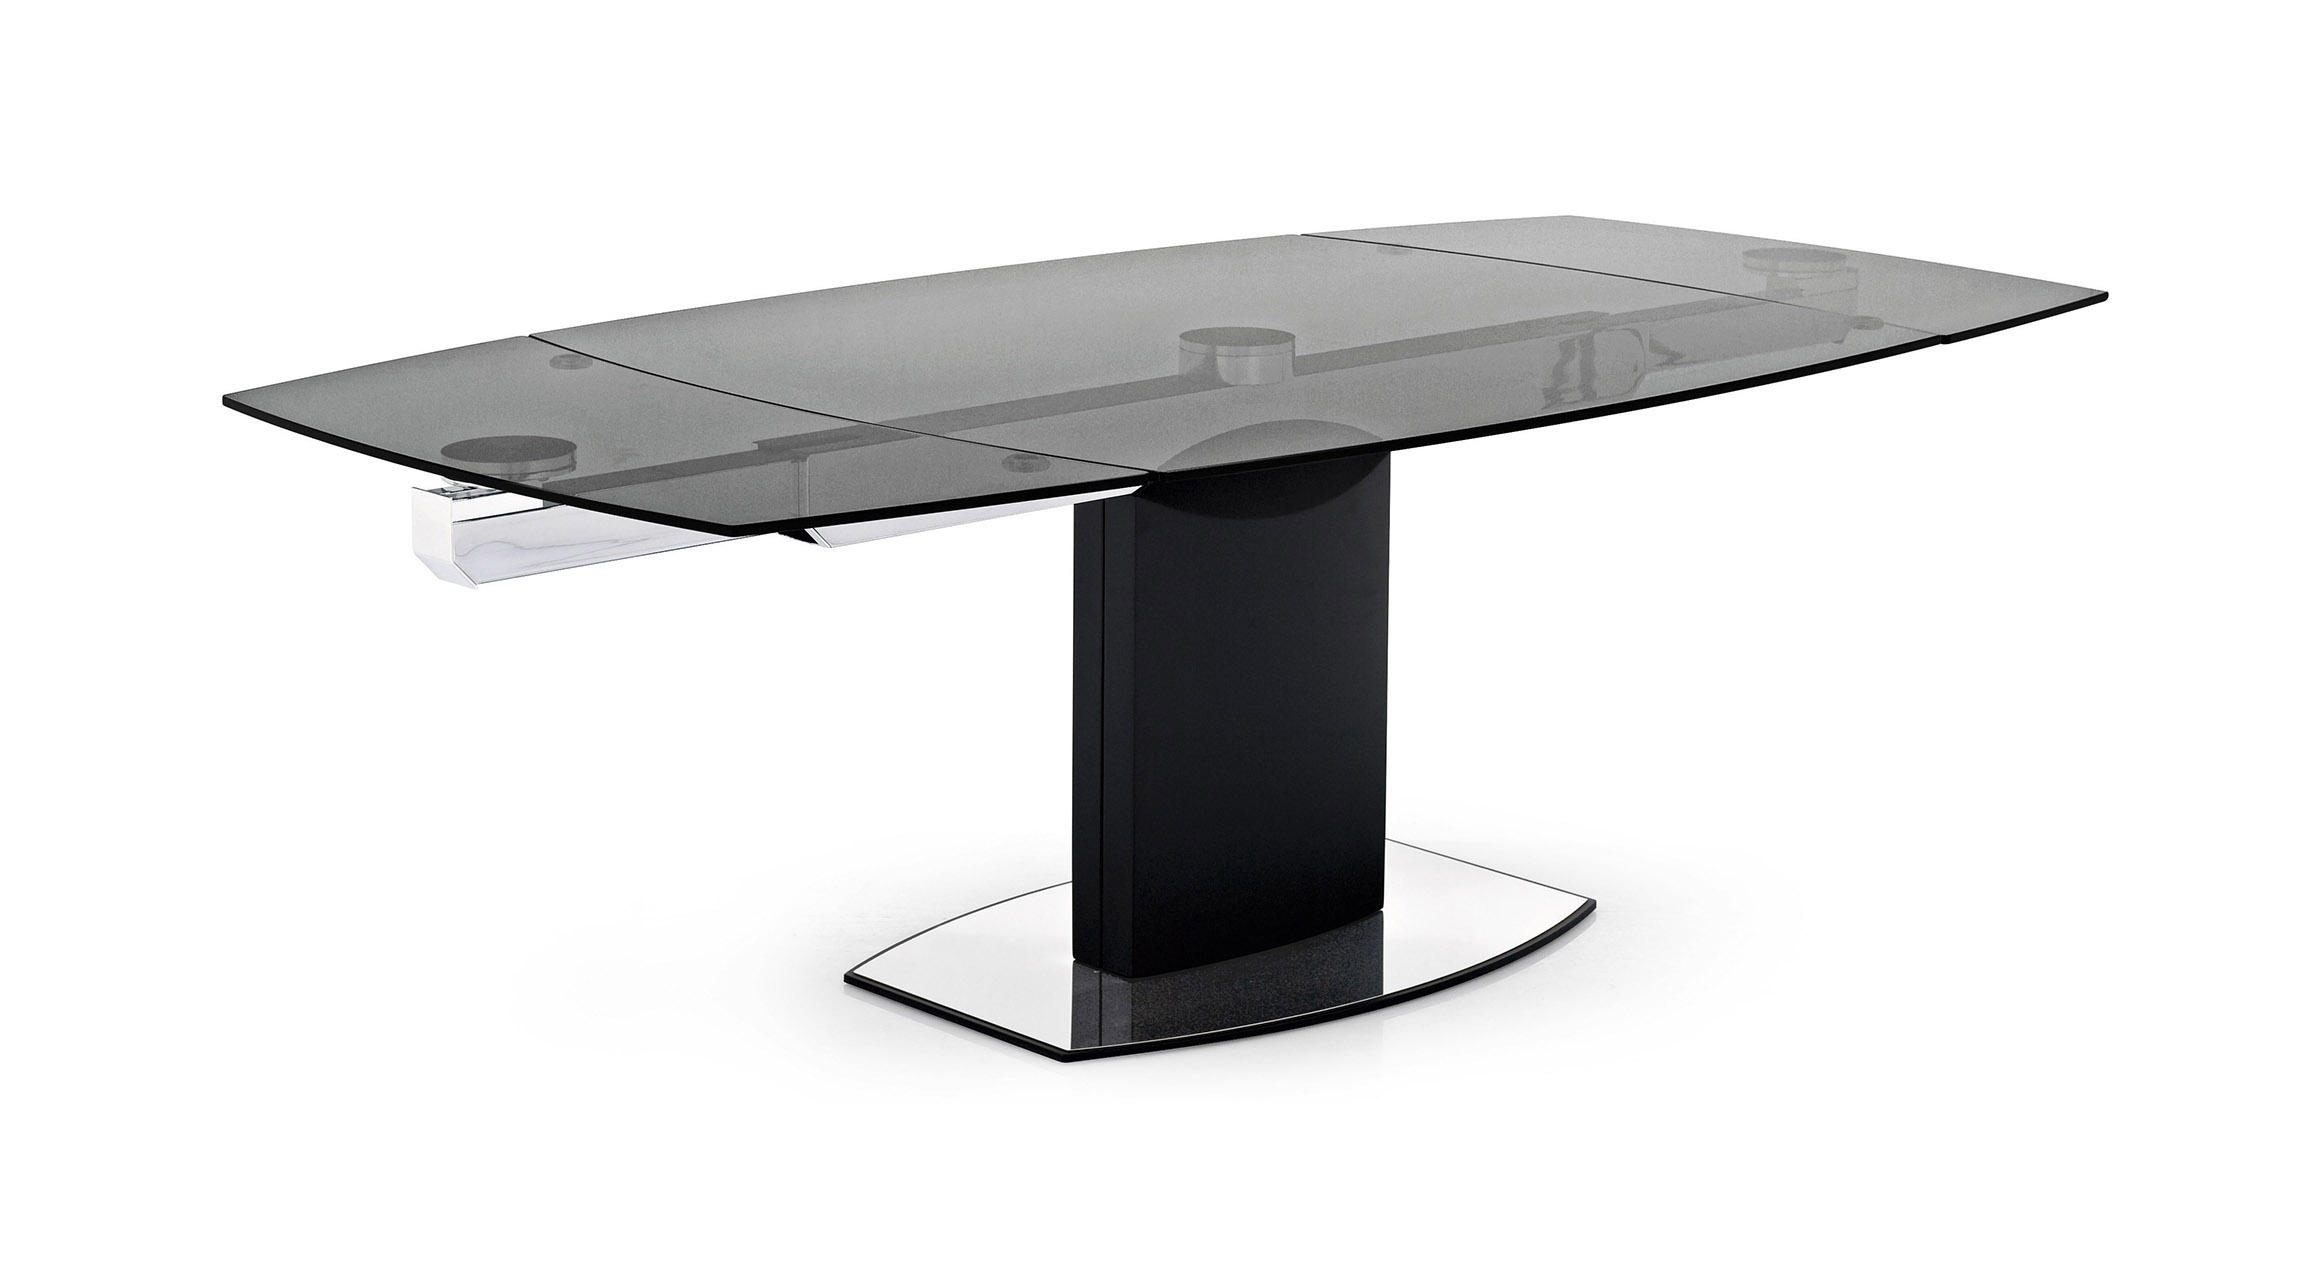 Orbital tavolo firmato pininfarina calligaris table by for Tavolo calligaris vetro temperato